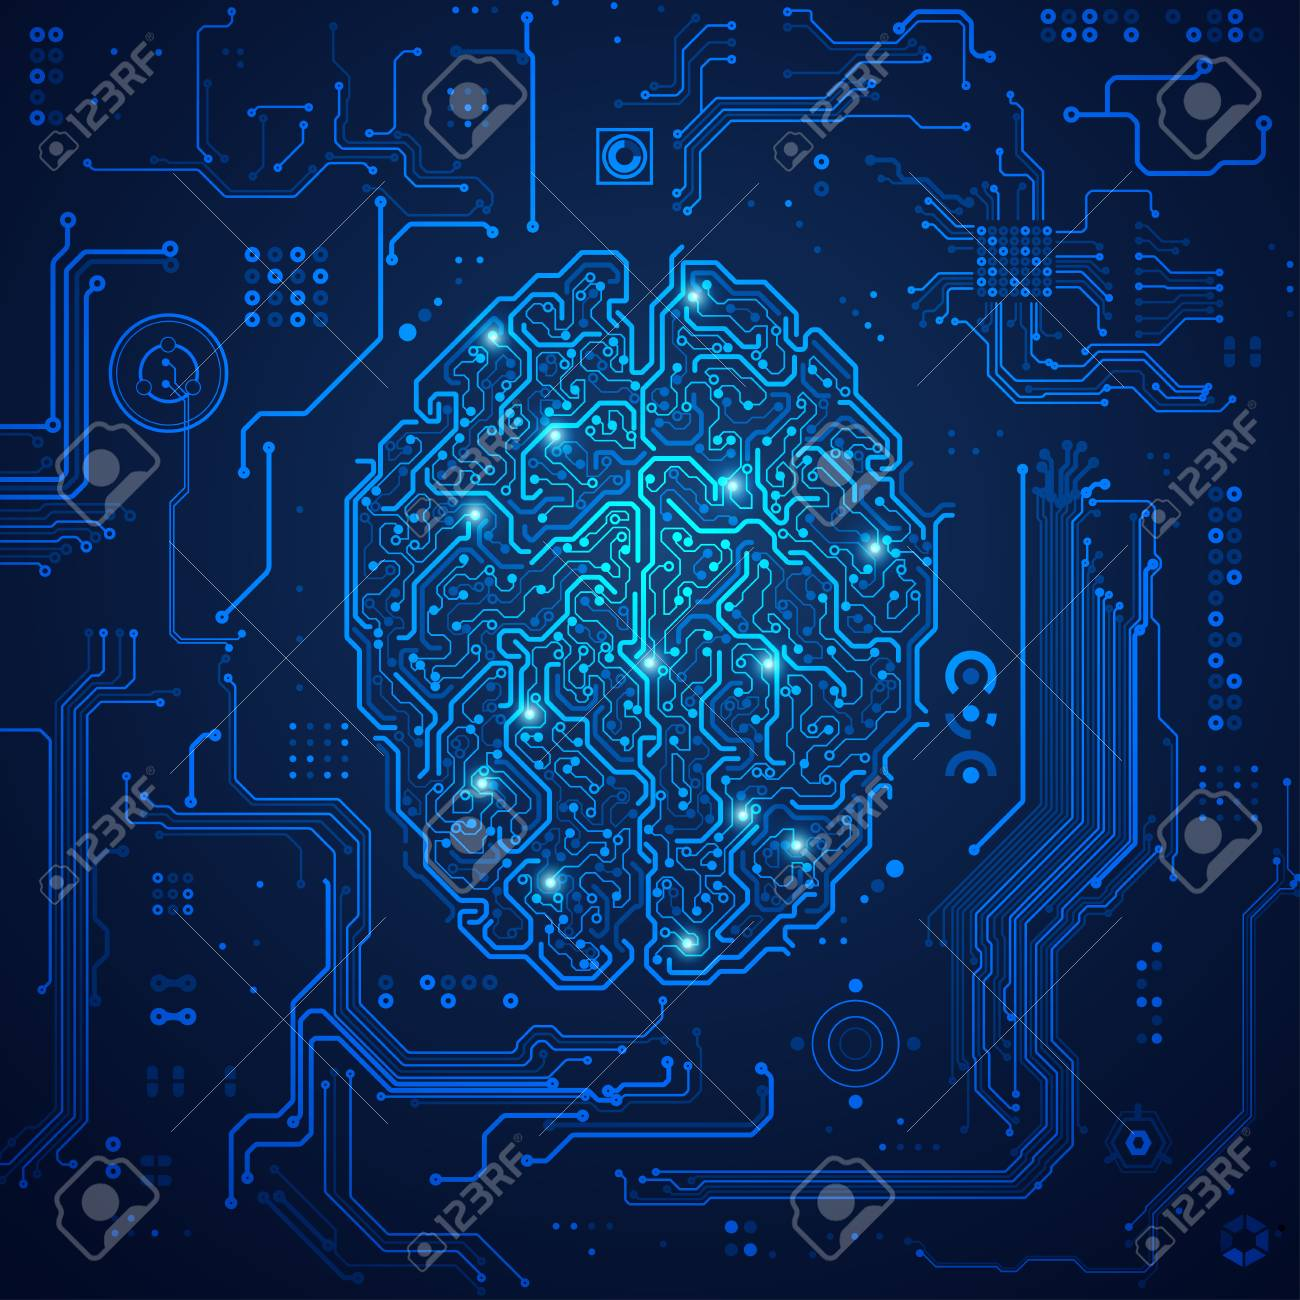 graphic of a brain in technological look; concept of technology advancement; digital blueprint of brain - 95891463